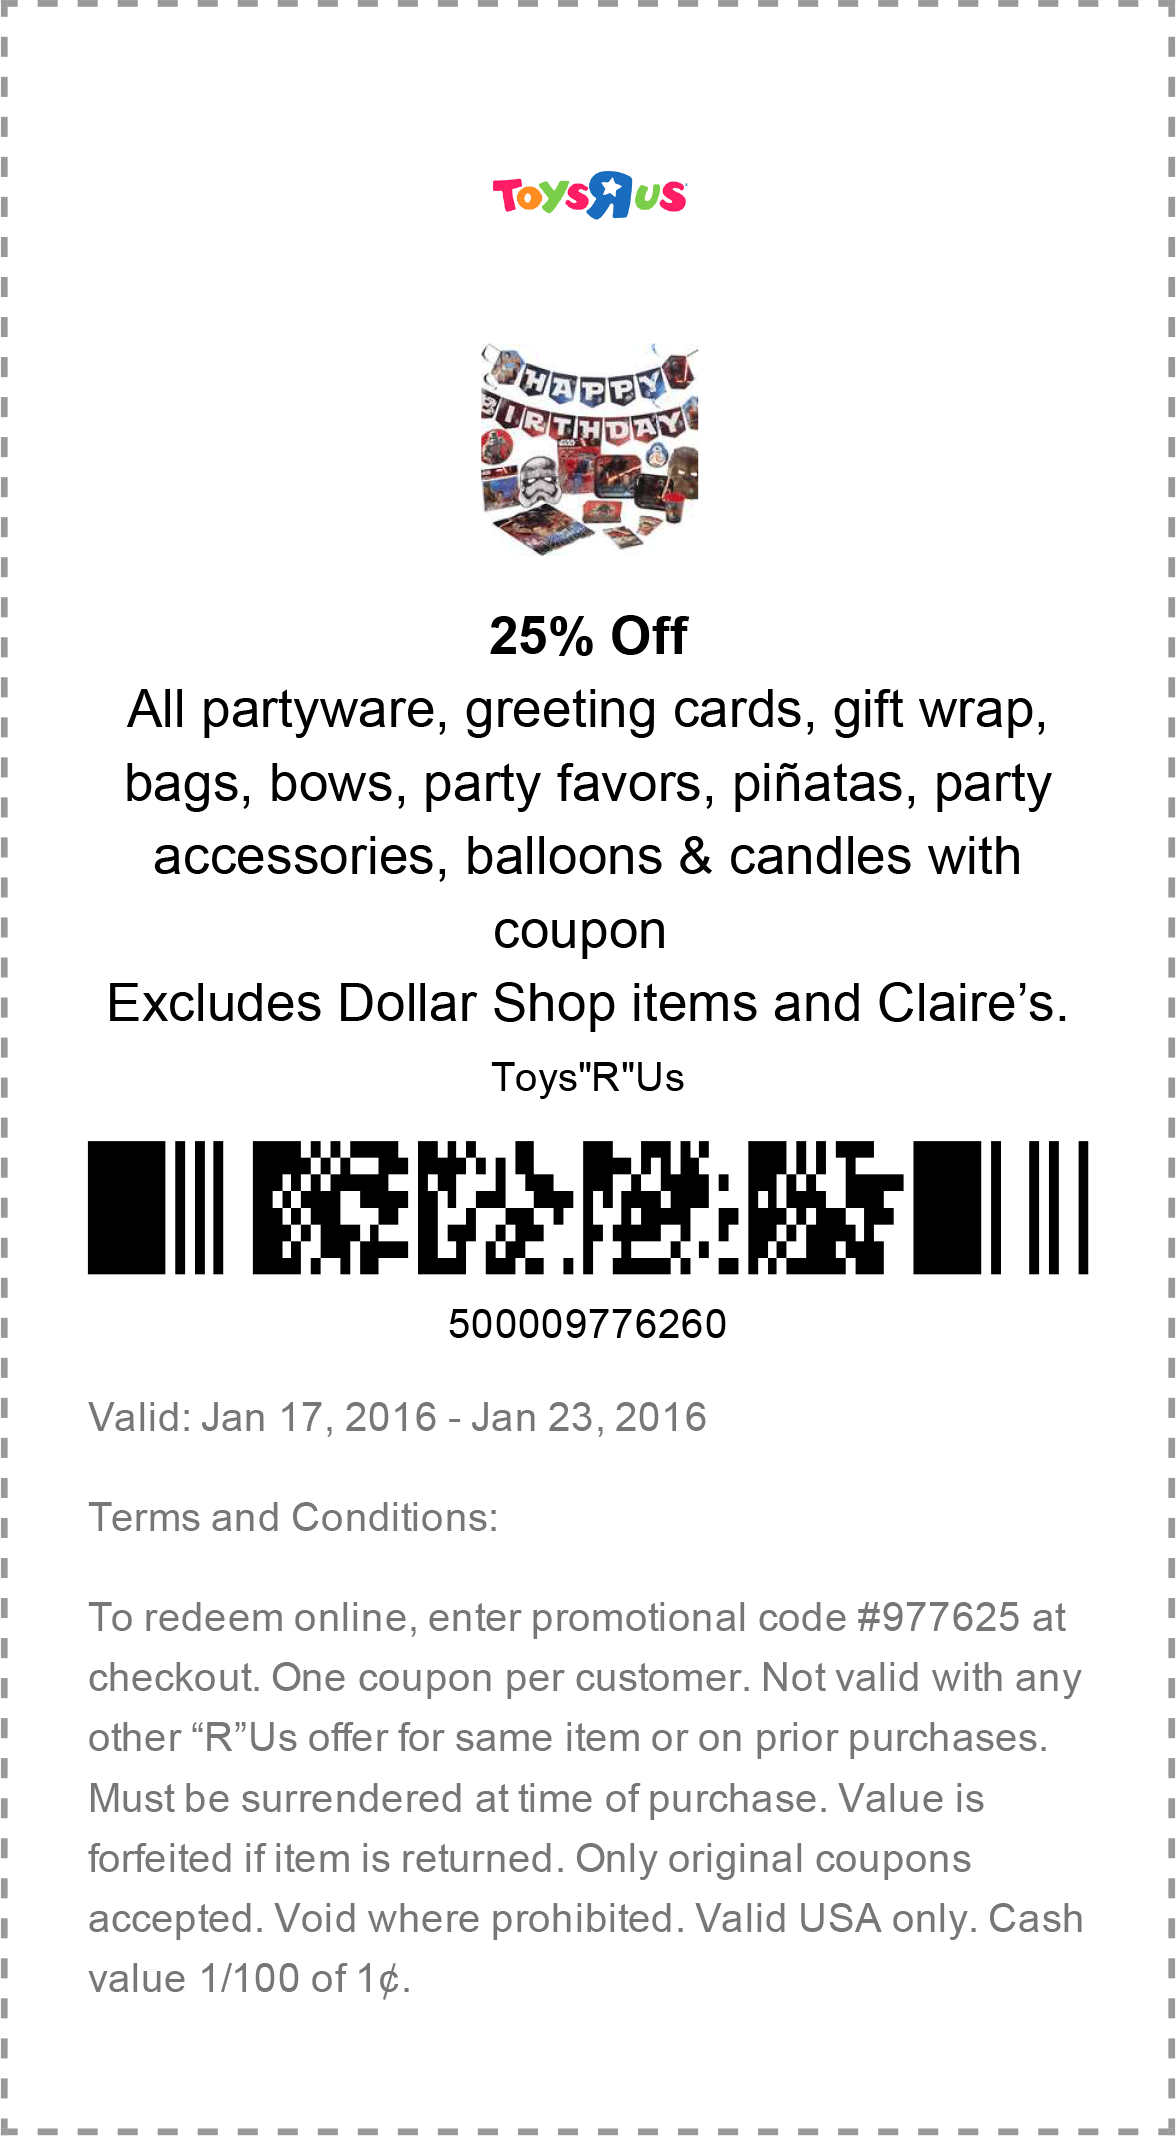 Toys R Us Coupon January 2017 25% off party supplies at Toys R Us